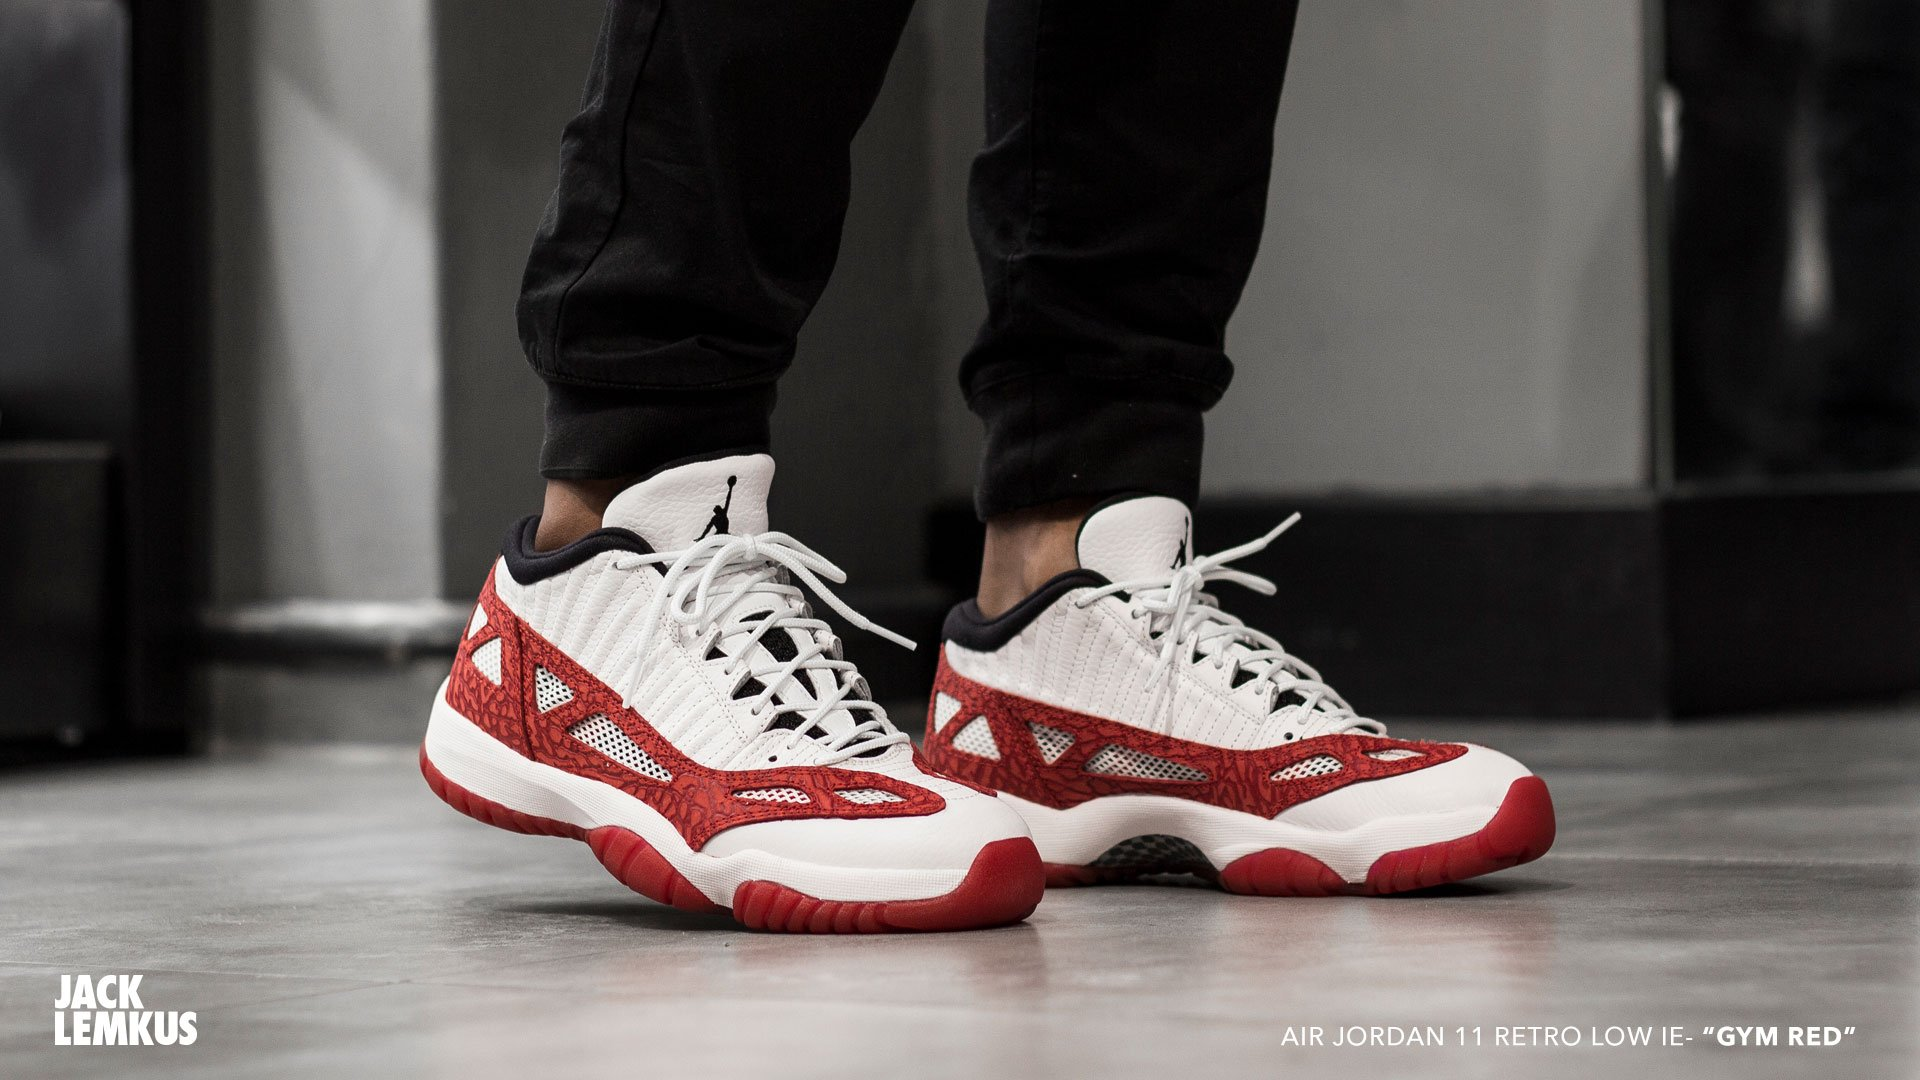 03db669eda15 ... free shipping jacklemkus on twitter release reminder air jordan 11  retro low ie gym red drops